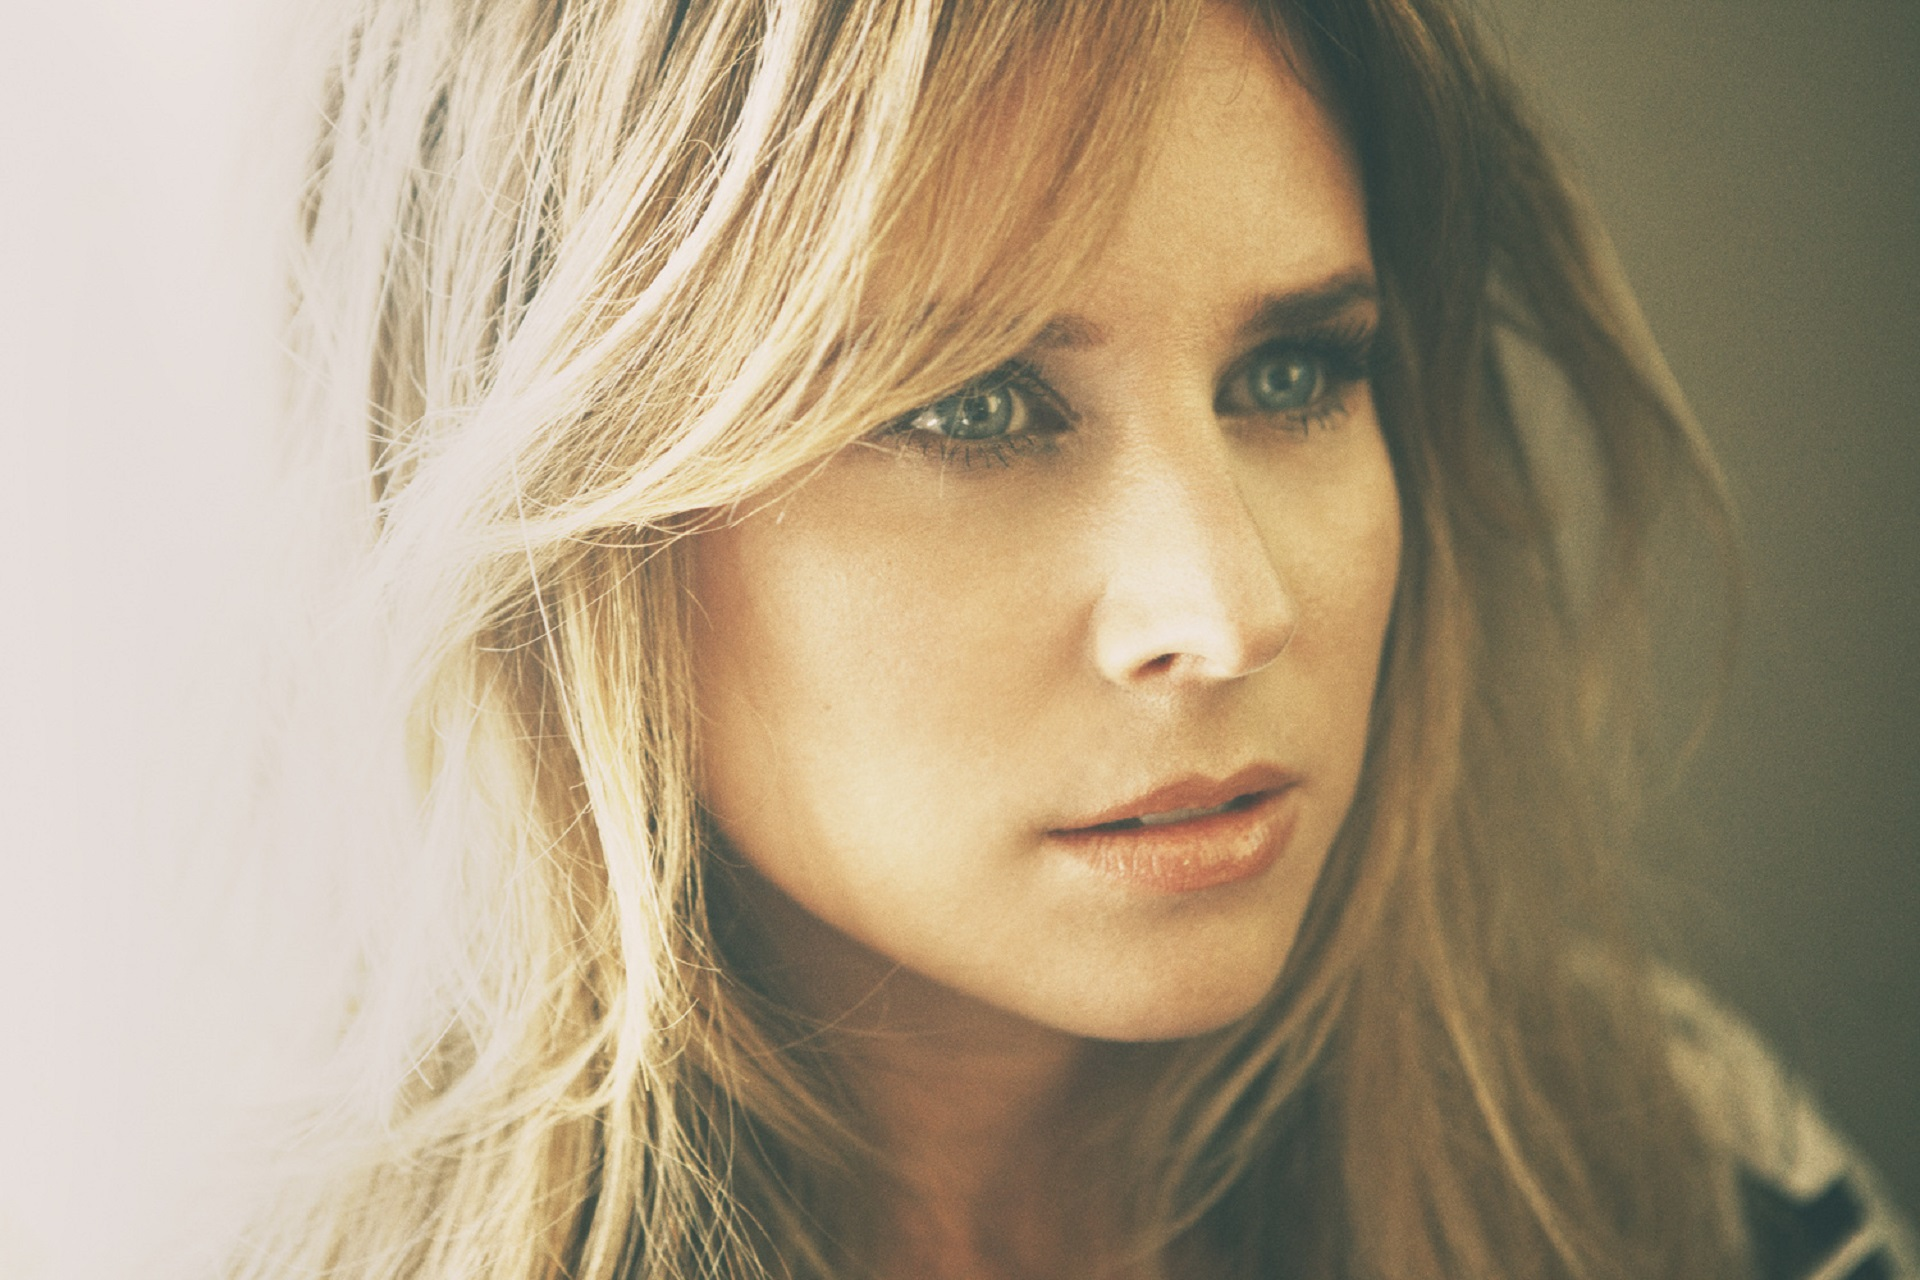 let love find you lucie silvas Lucie silvas tour dates and concert tickets in 2018 on eventful get alerts when lucie silvas comes to your city or bring lucie silvas to your city using dem.